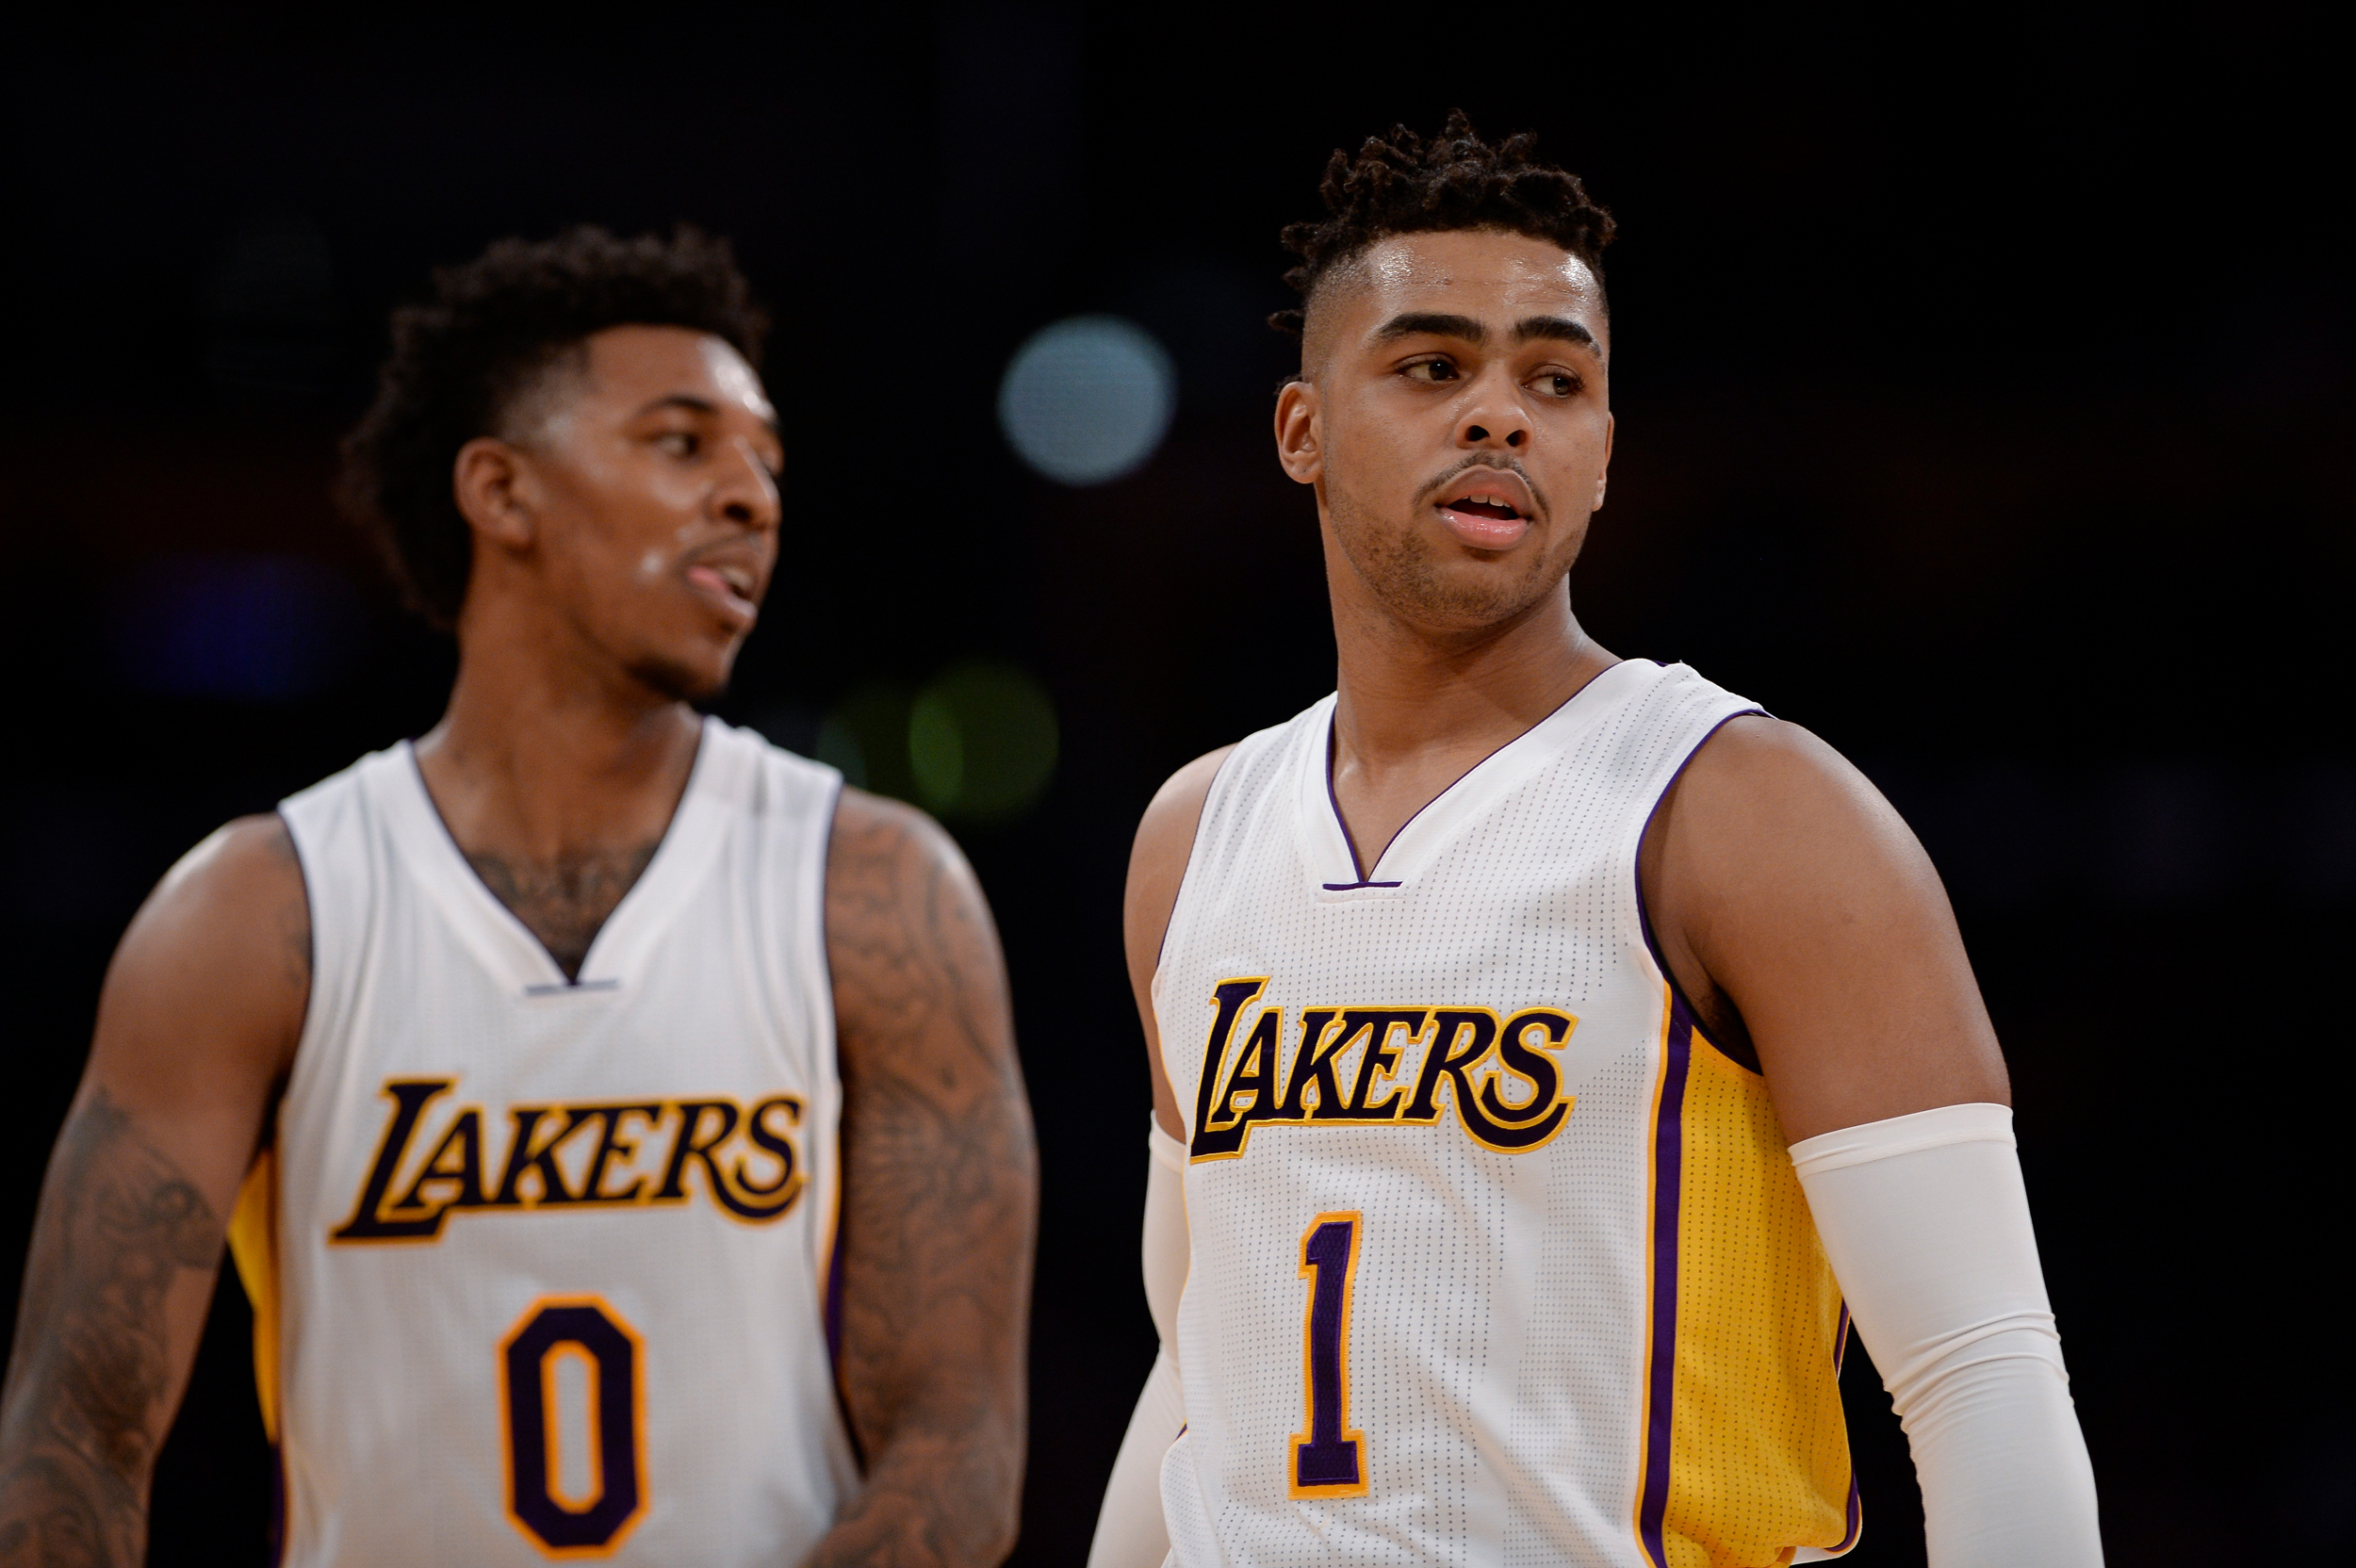 Los Angeles Lakers guard Nick Young (0) and teammate guard D'Angelo Russell (1) during the first half of an NBA basketball game against the New York Knicks, Sunday, Dec. 11, 2016, in Los Angeles.